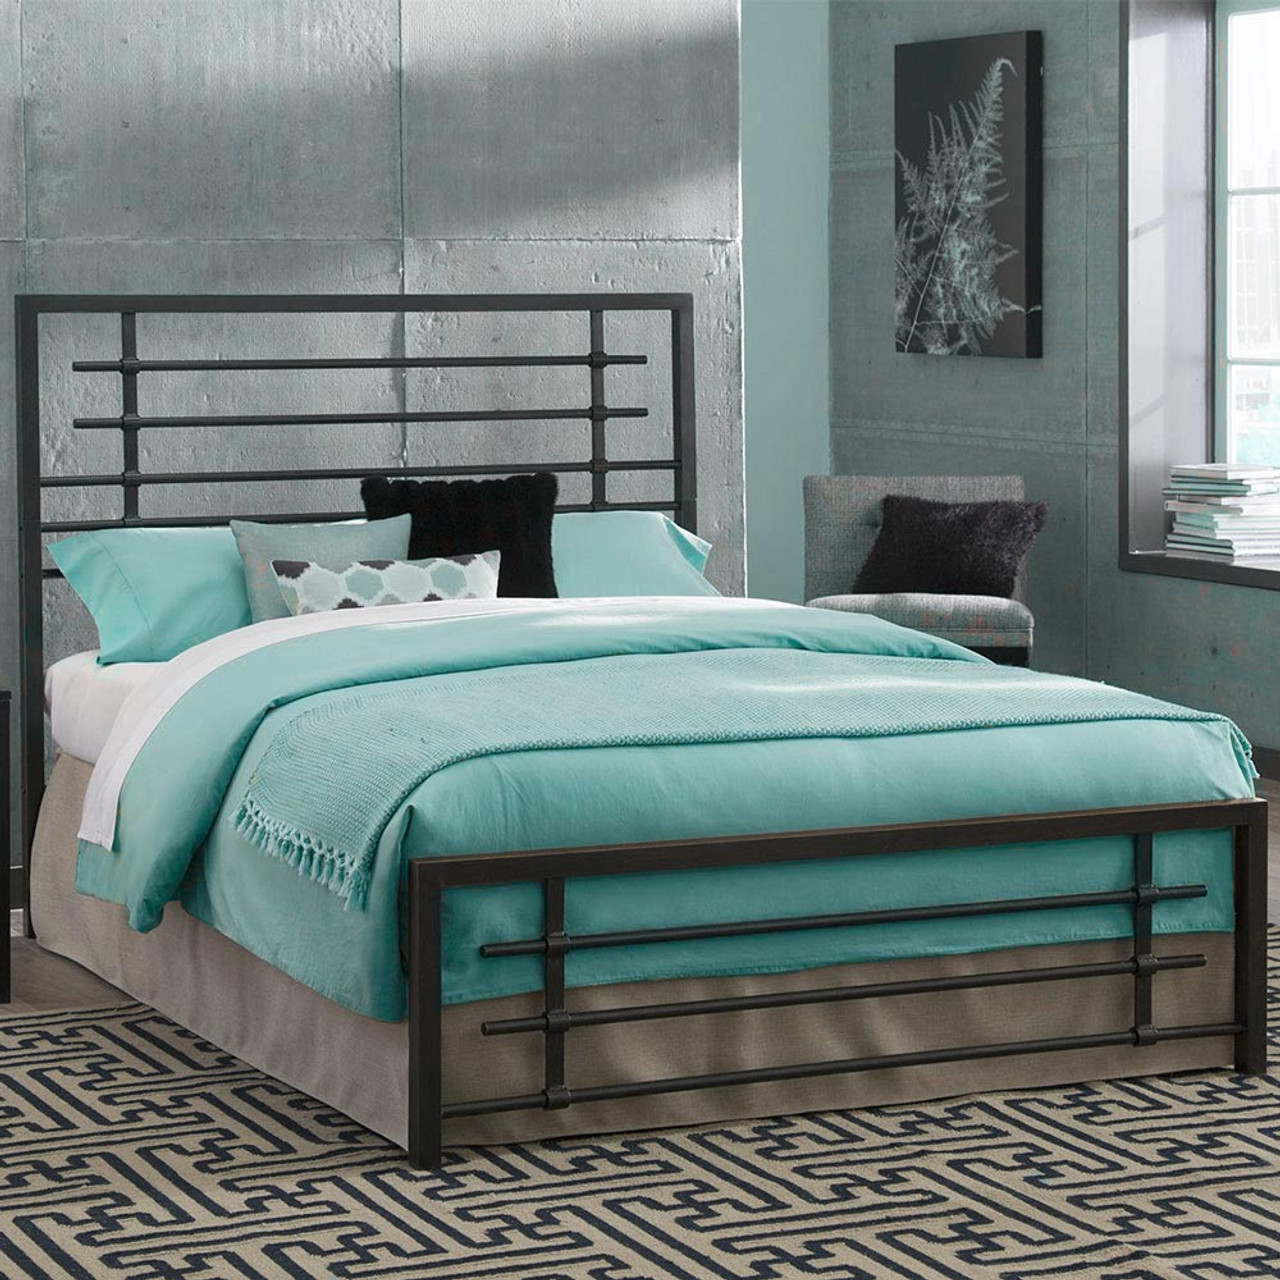 Metal Bed Frame Carbon Steel With Rustic Pewter Finish Folding Bed Frame